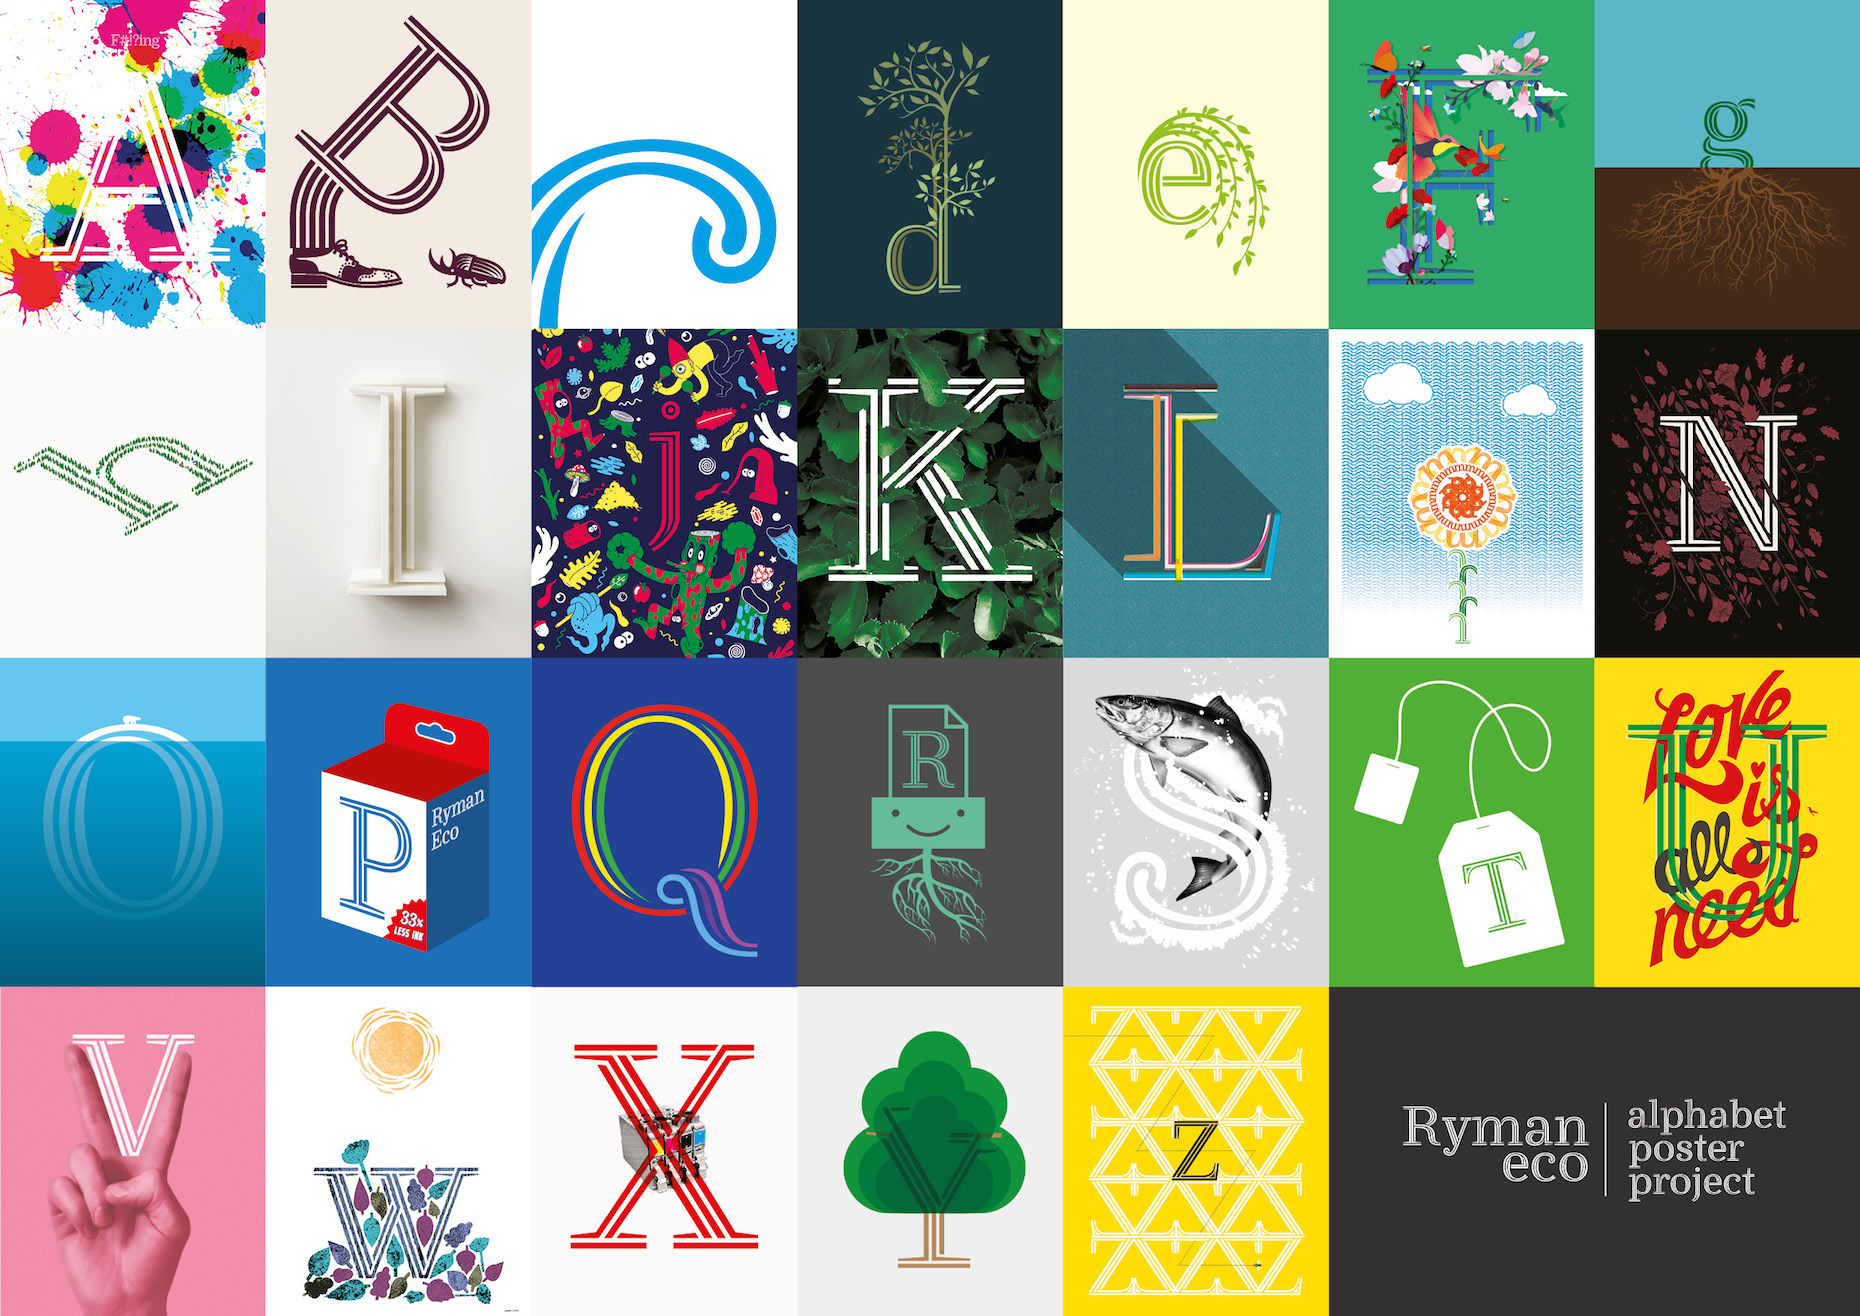 Photo: Alphabet Poster Project promotes the Ryman Eco sustainabel font